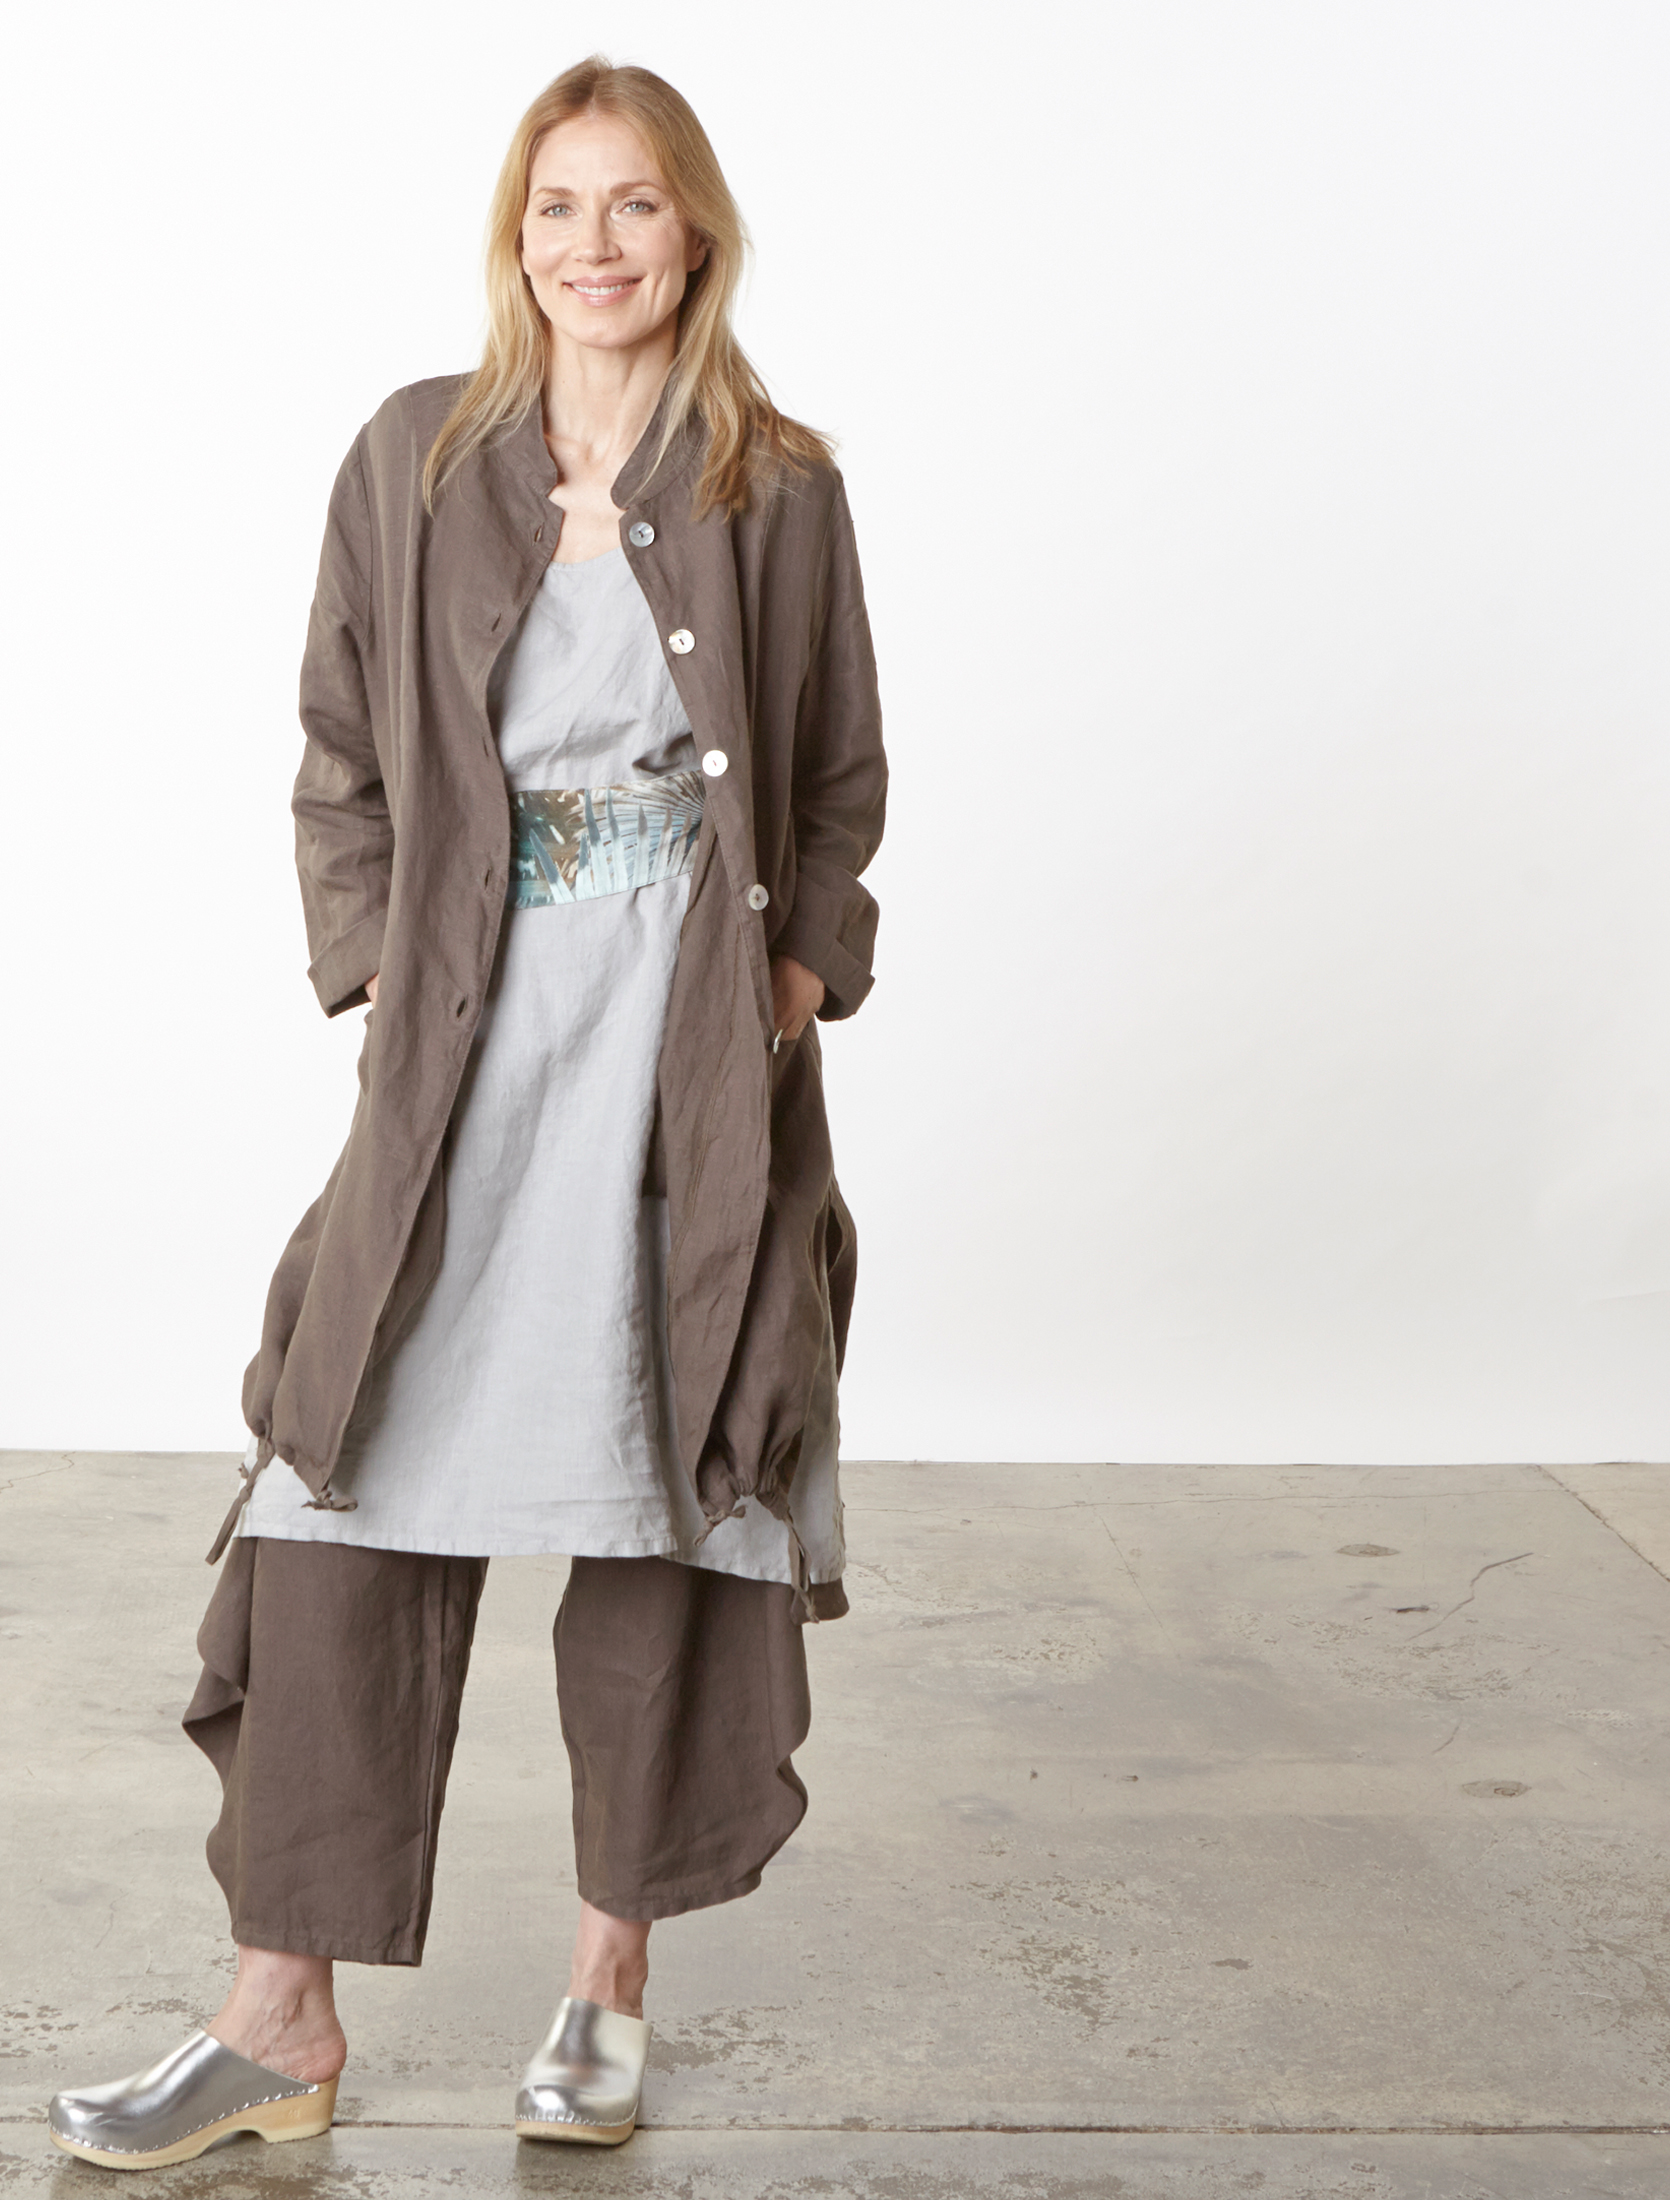 Emerson Jacket, Hamish Pant in Easel, Luella Dress in Pier Light Linen